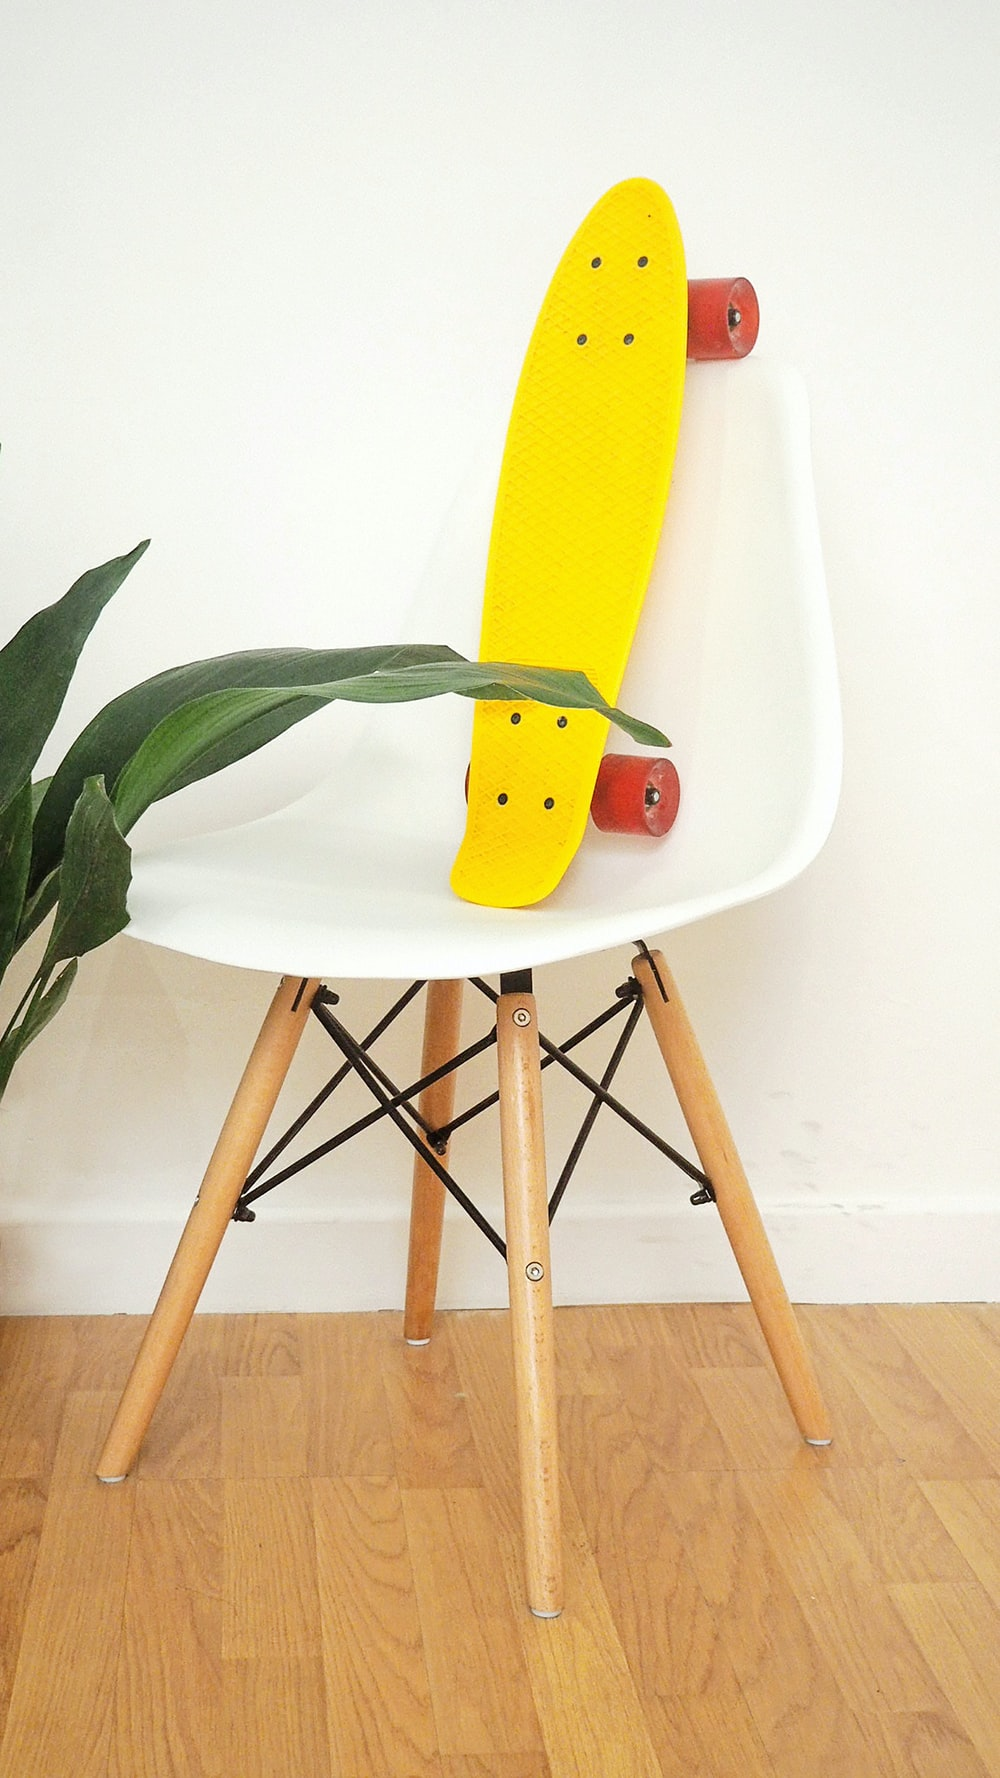 yellow penny board in white plastic chair